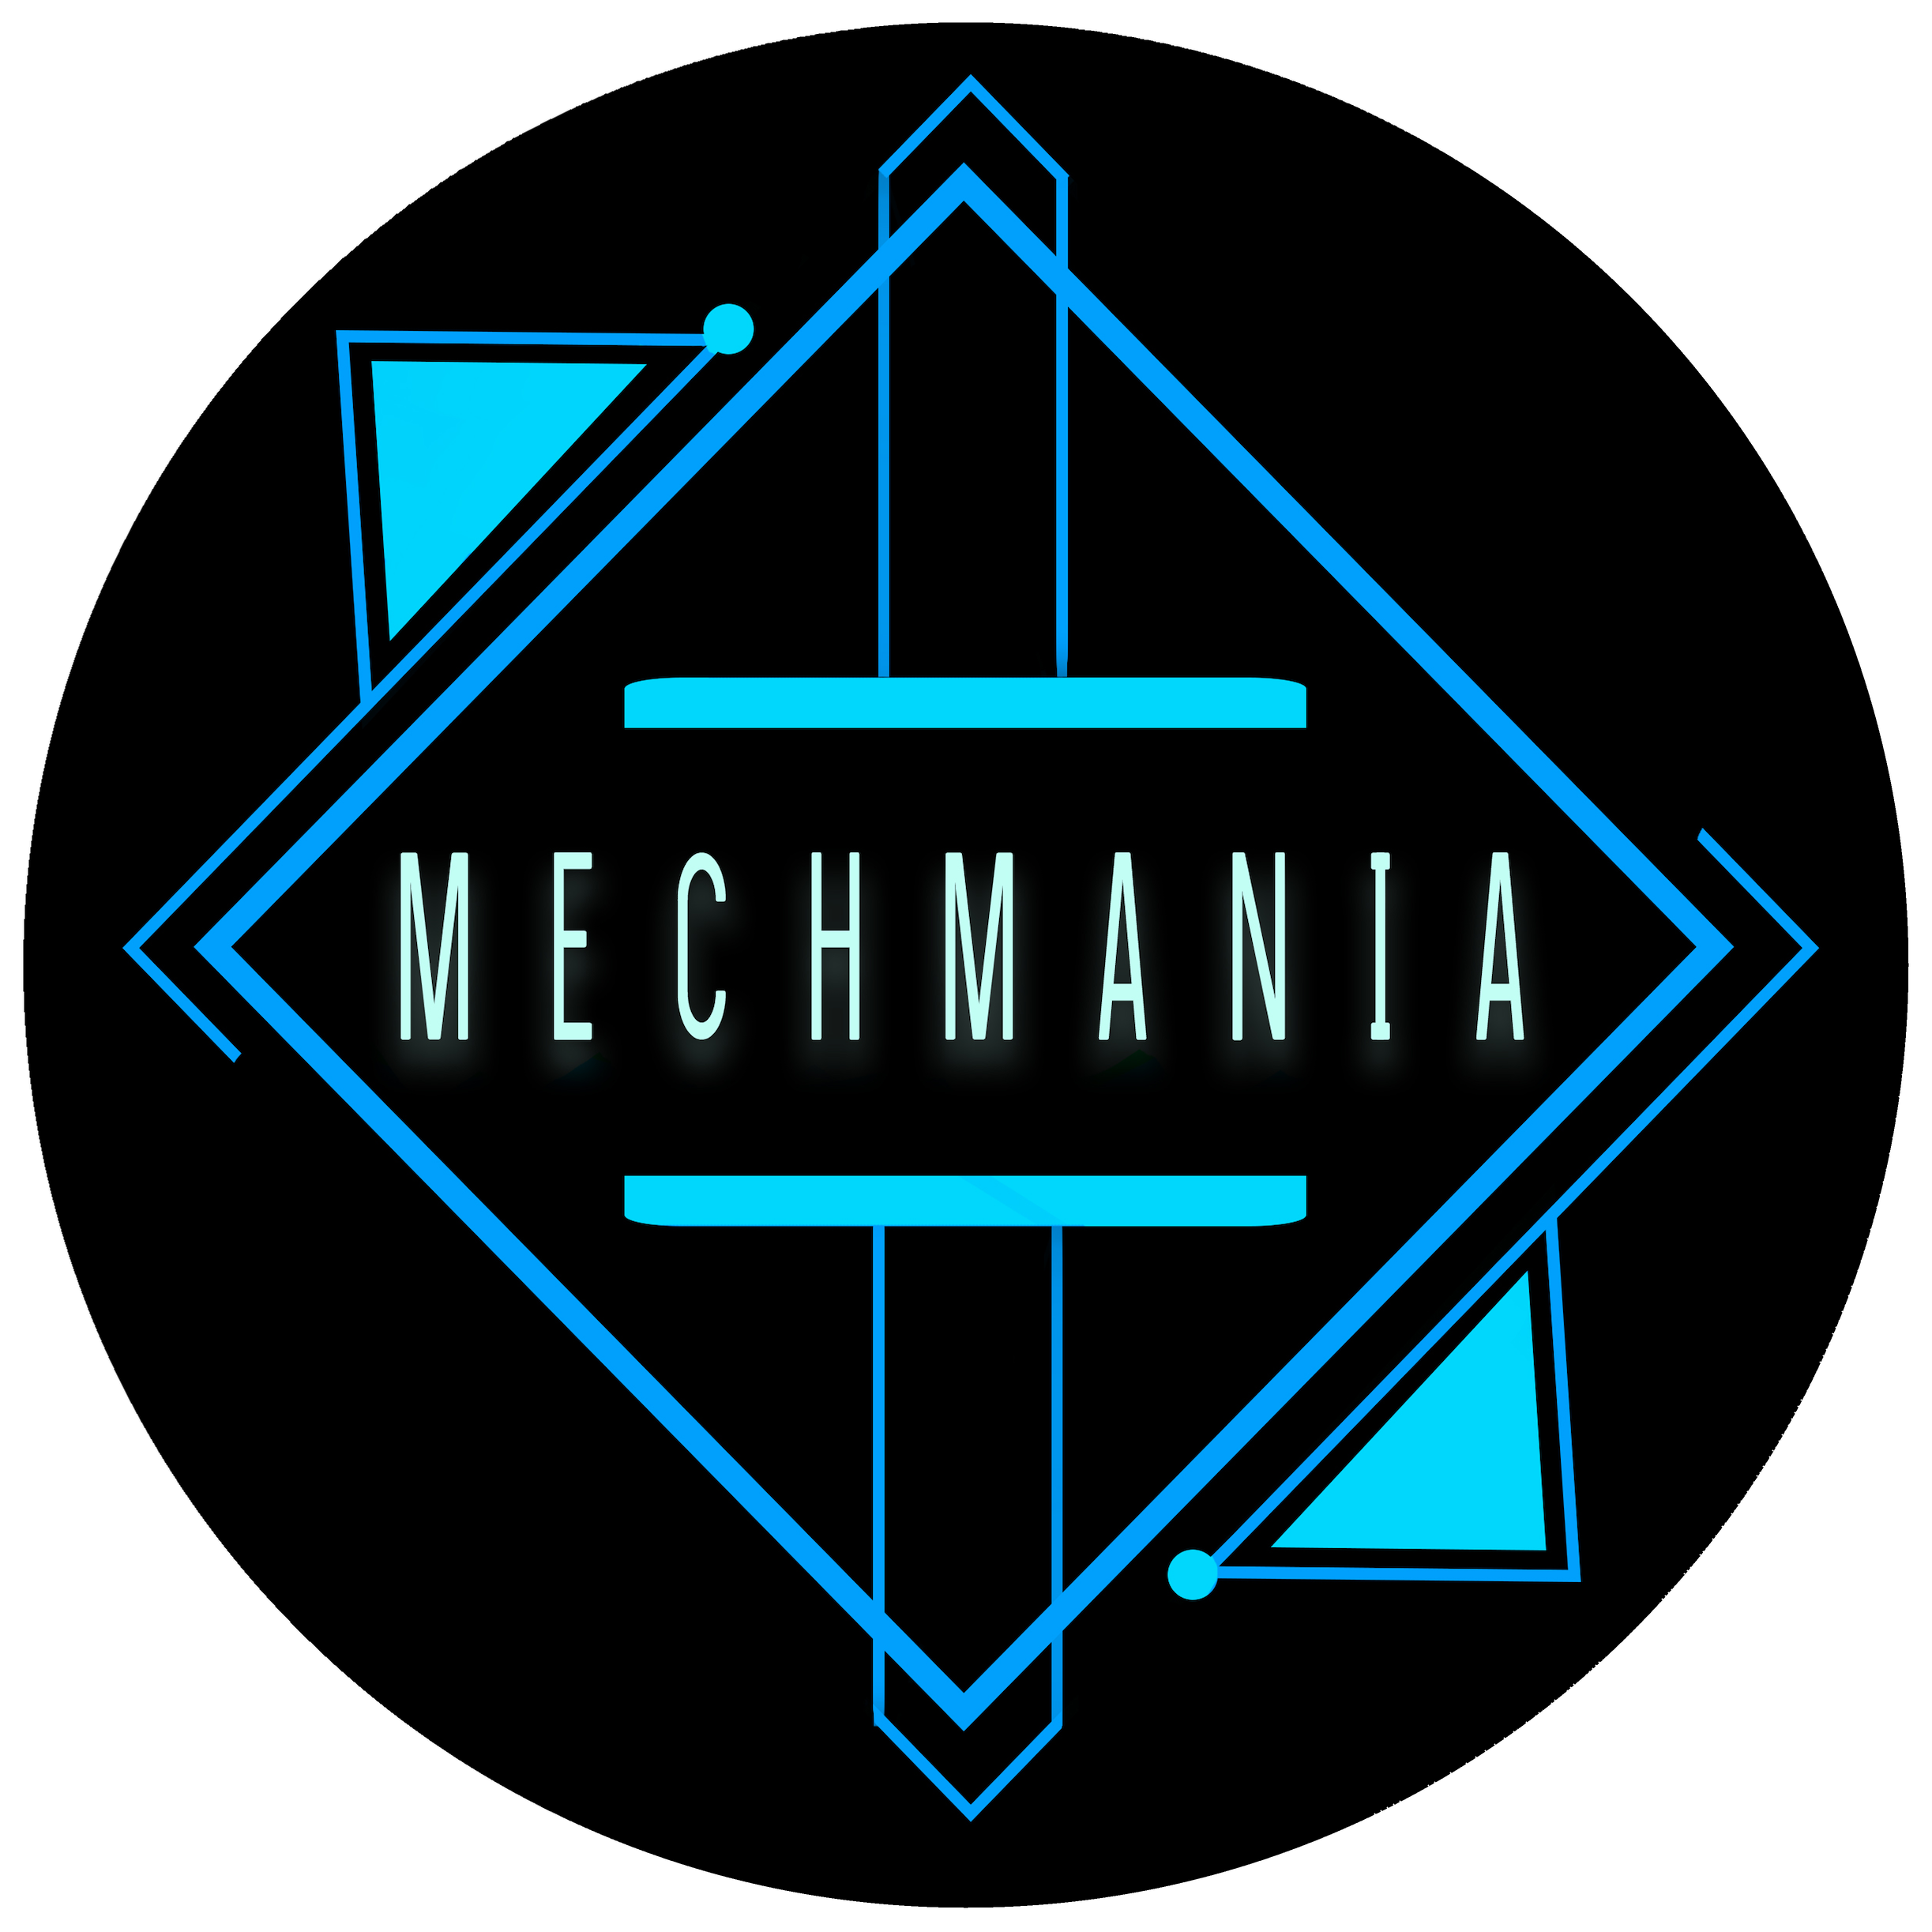 MechMania